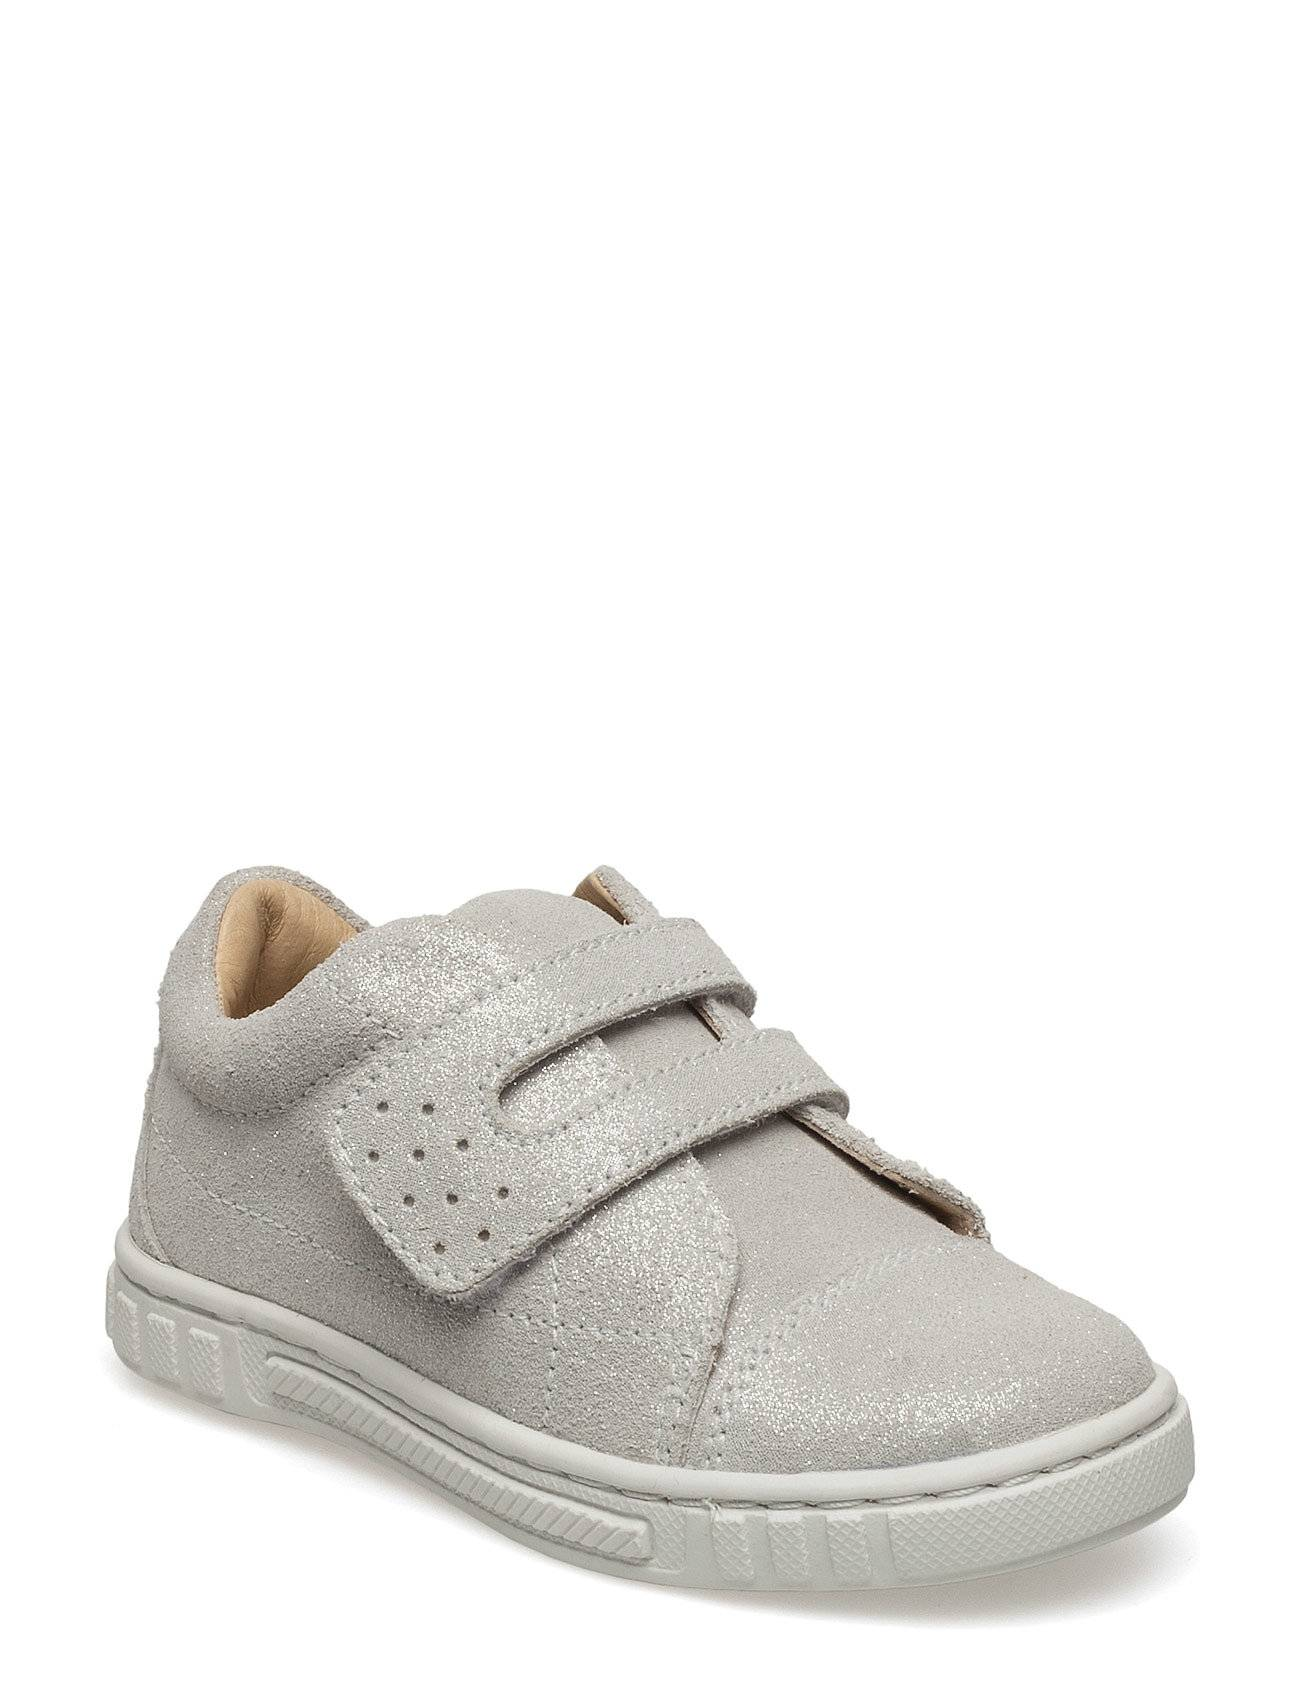 Move by Melton Infant Single Velcro Shoe